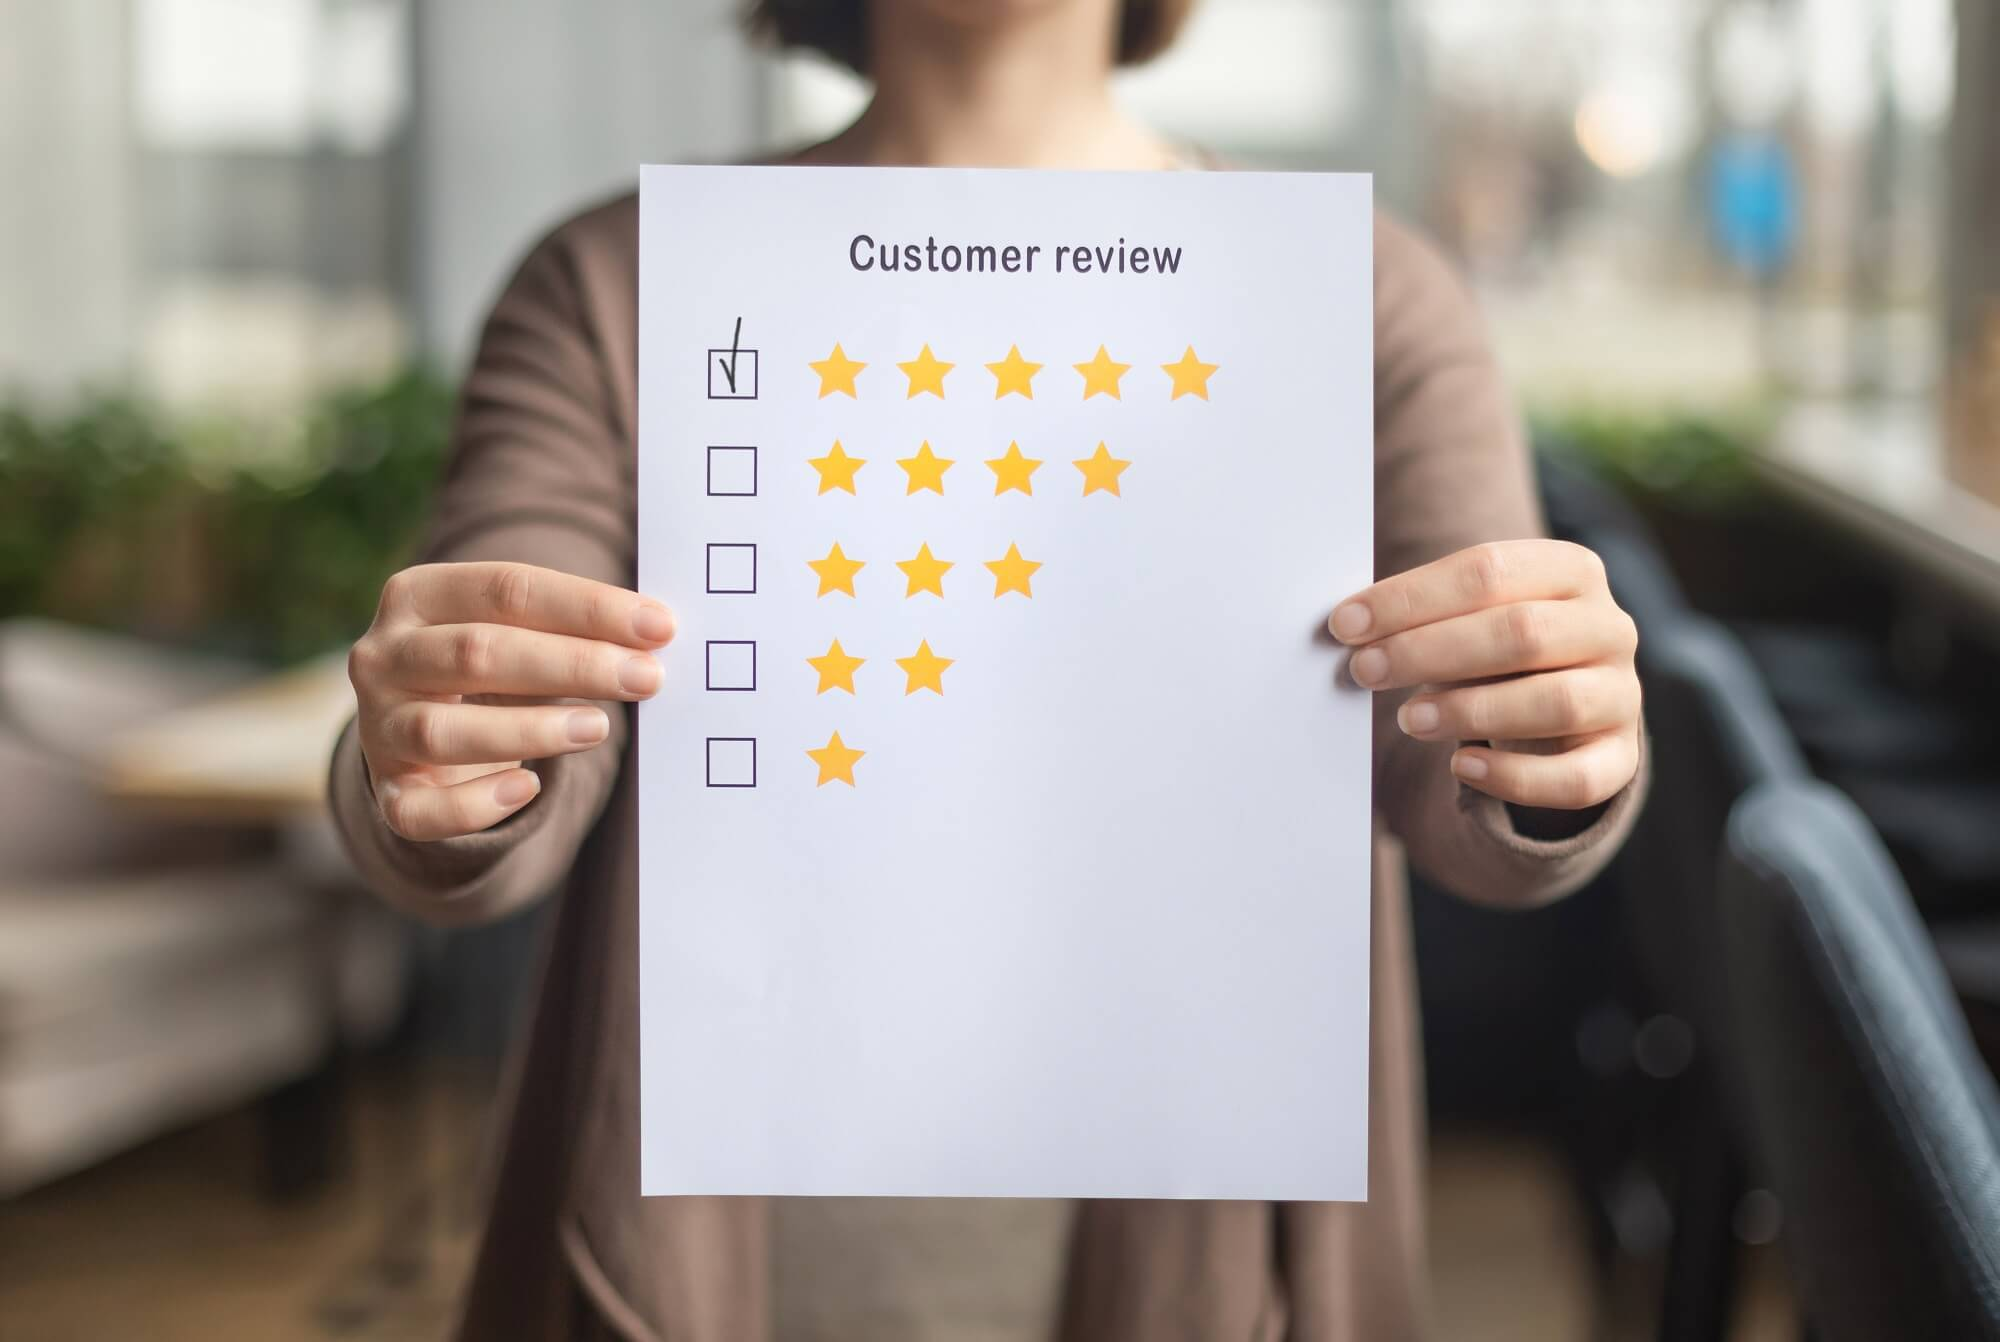 review shared by customer on paper